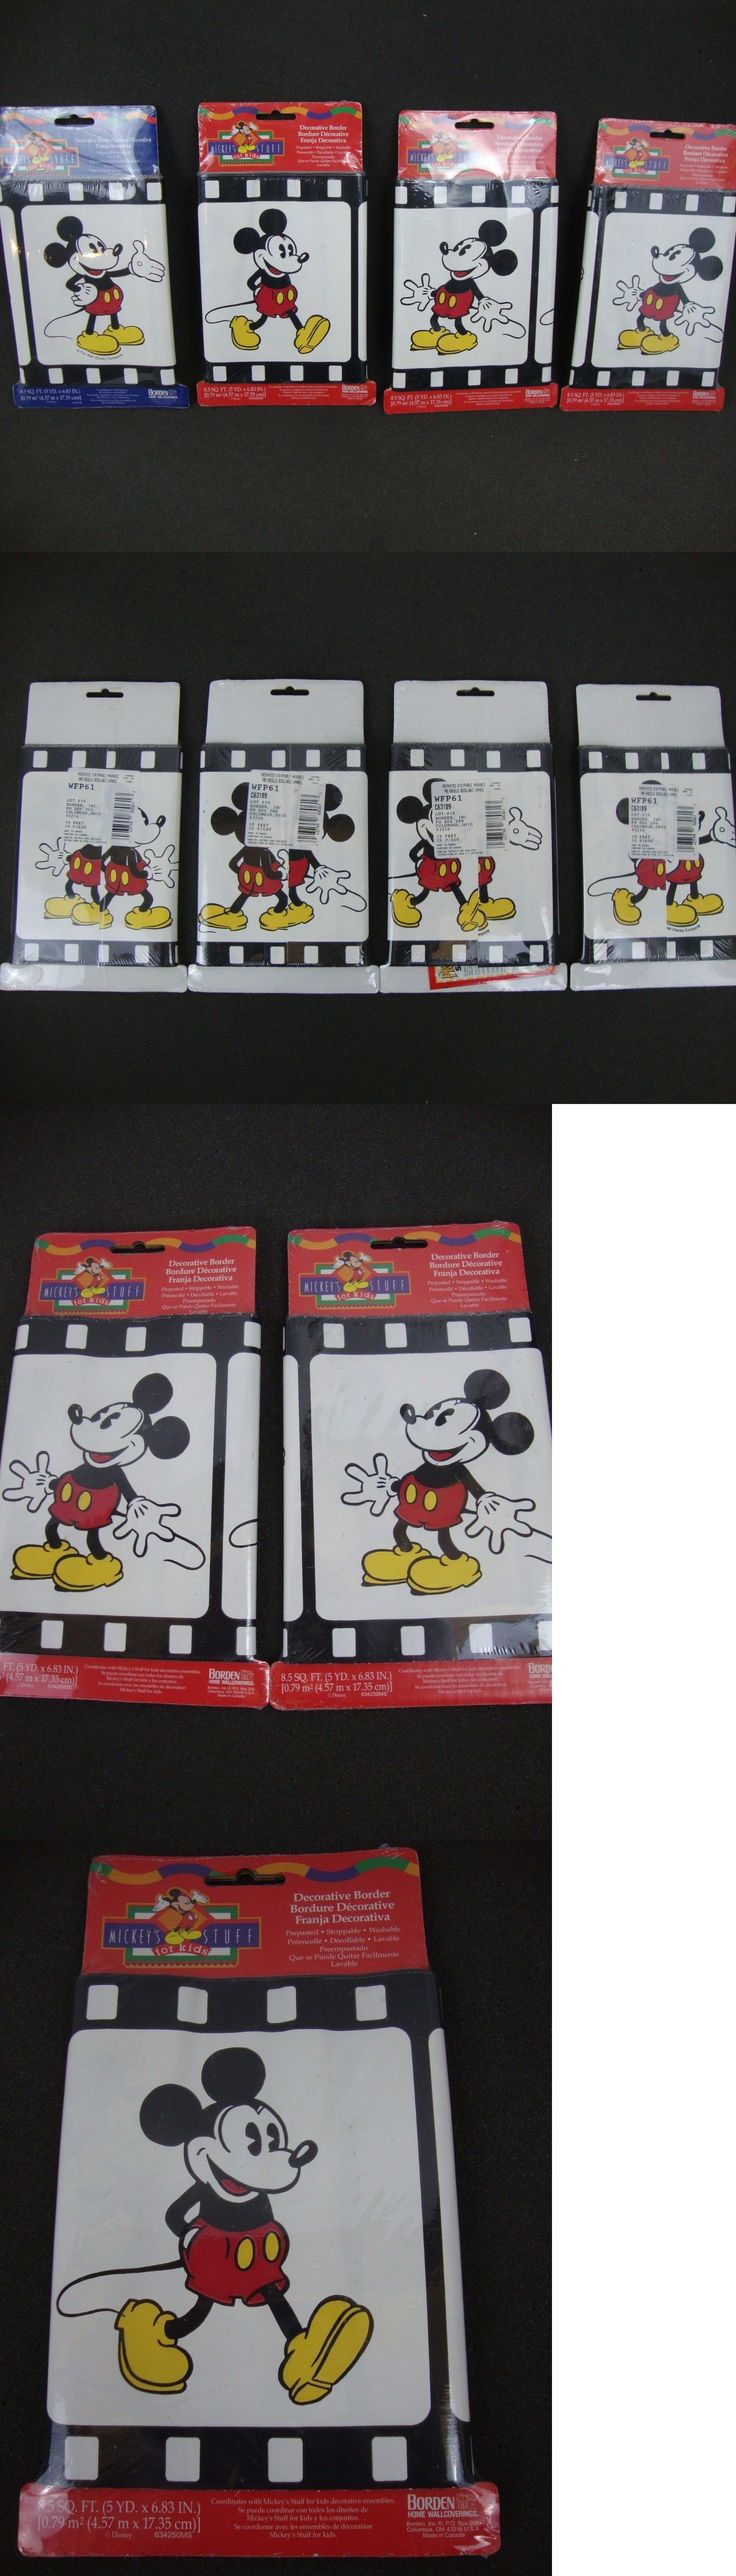 Wallpaper Borders 42136: Mickey Mouse Disney Film Strip Wallpaper Decorative Border 60 Ft New Lot Of 4 -> BUY IT NOW ONLY: $49.95 on eBay!